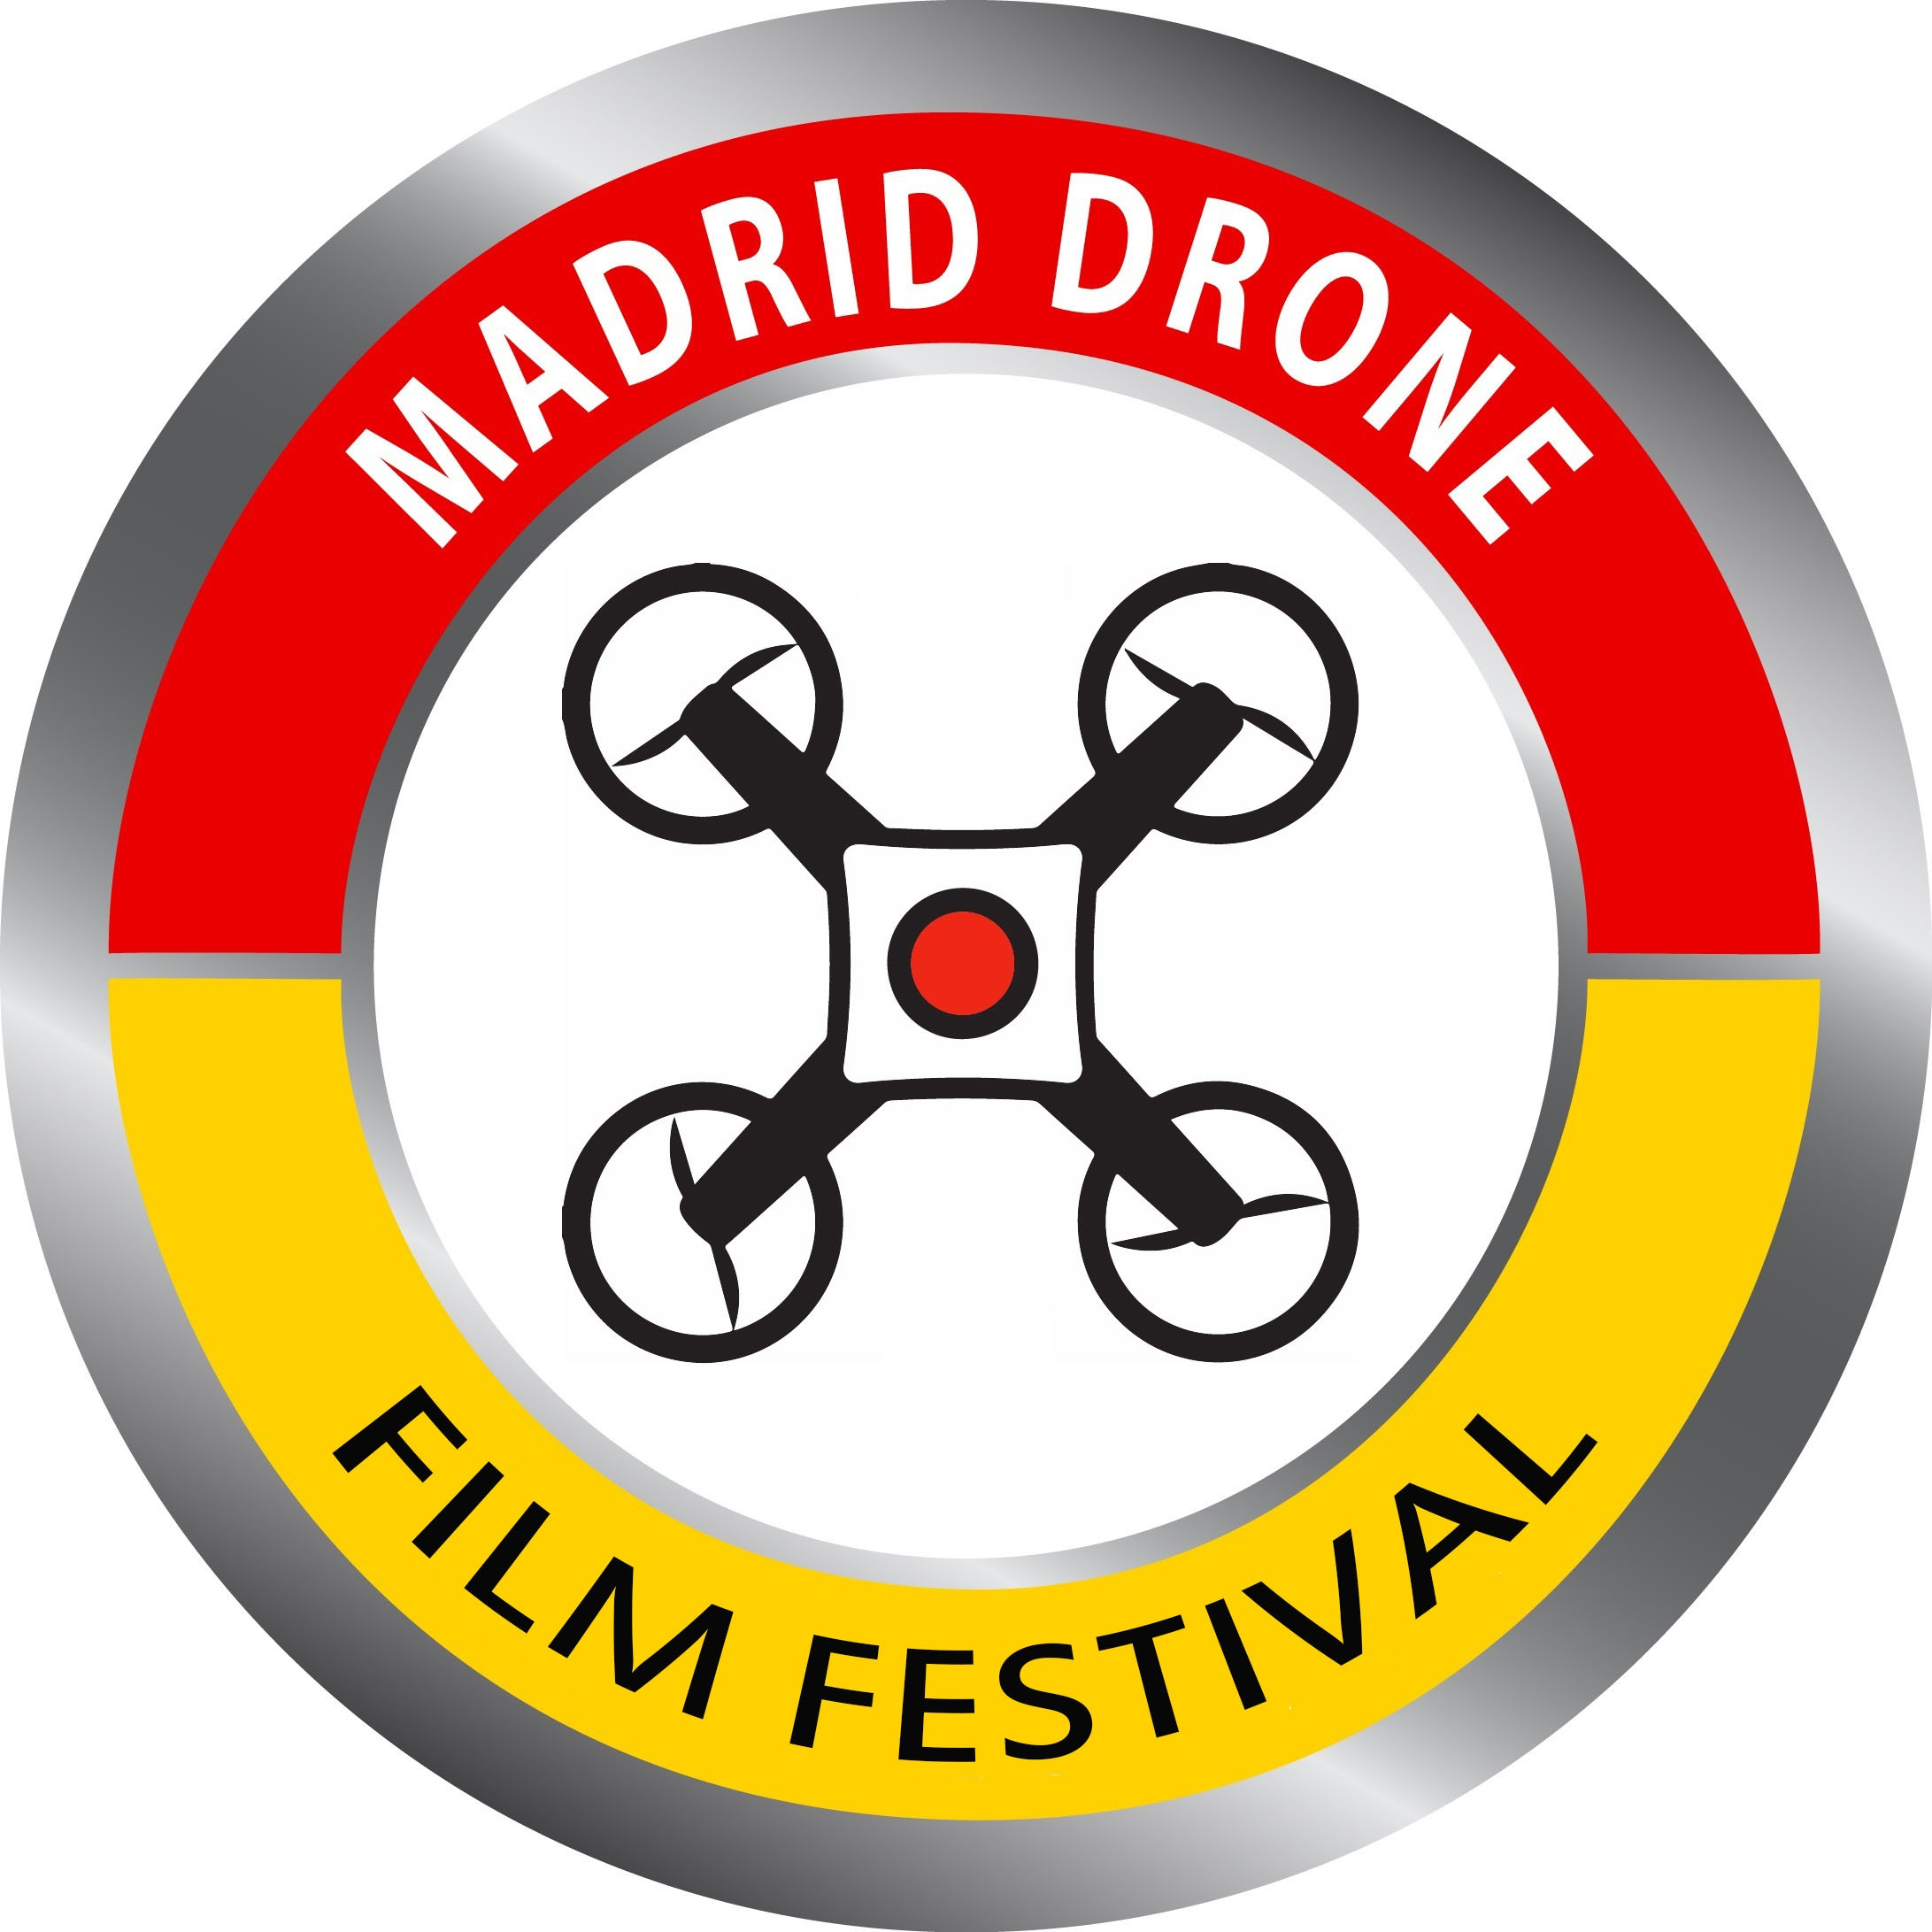 Madrid Drone Film Festival